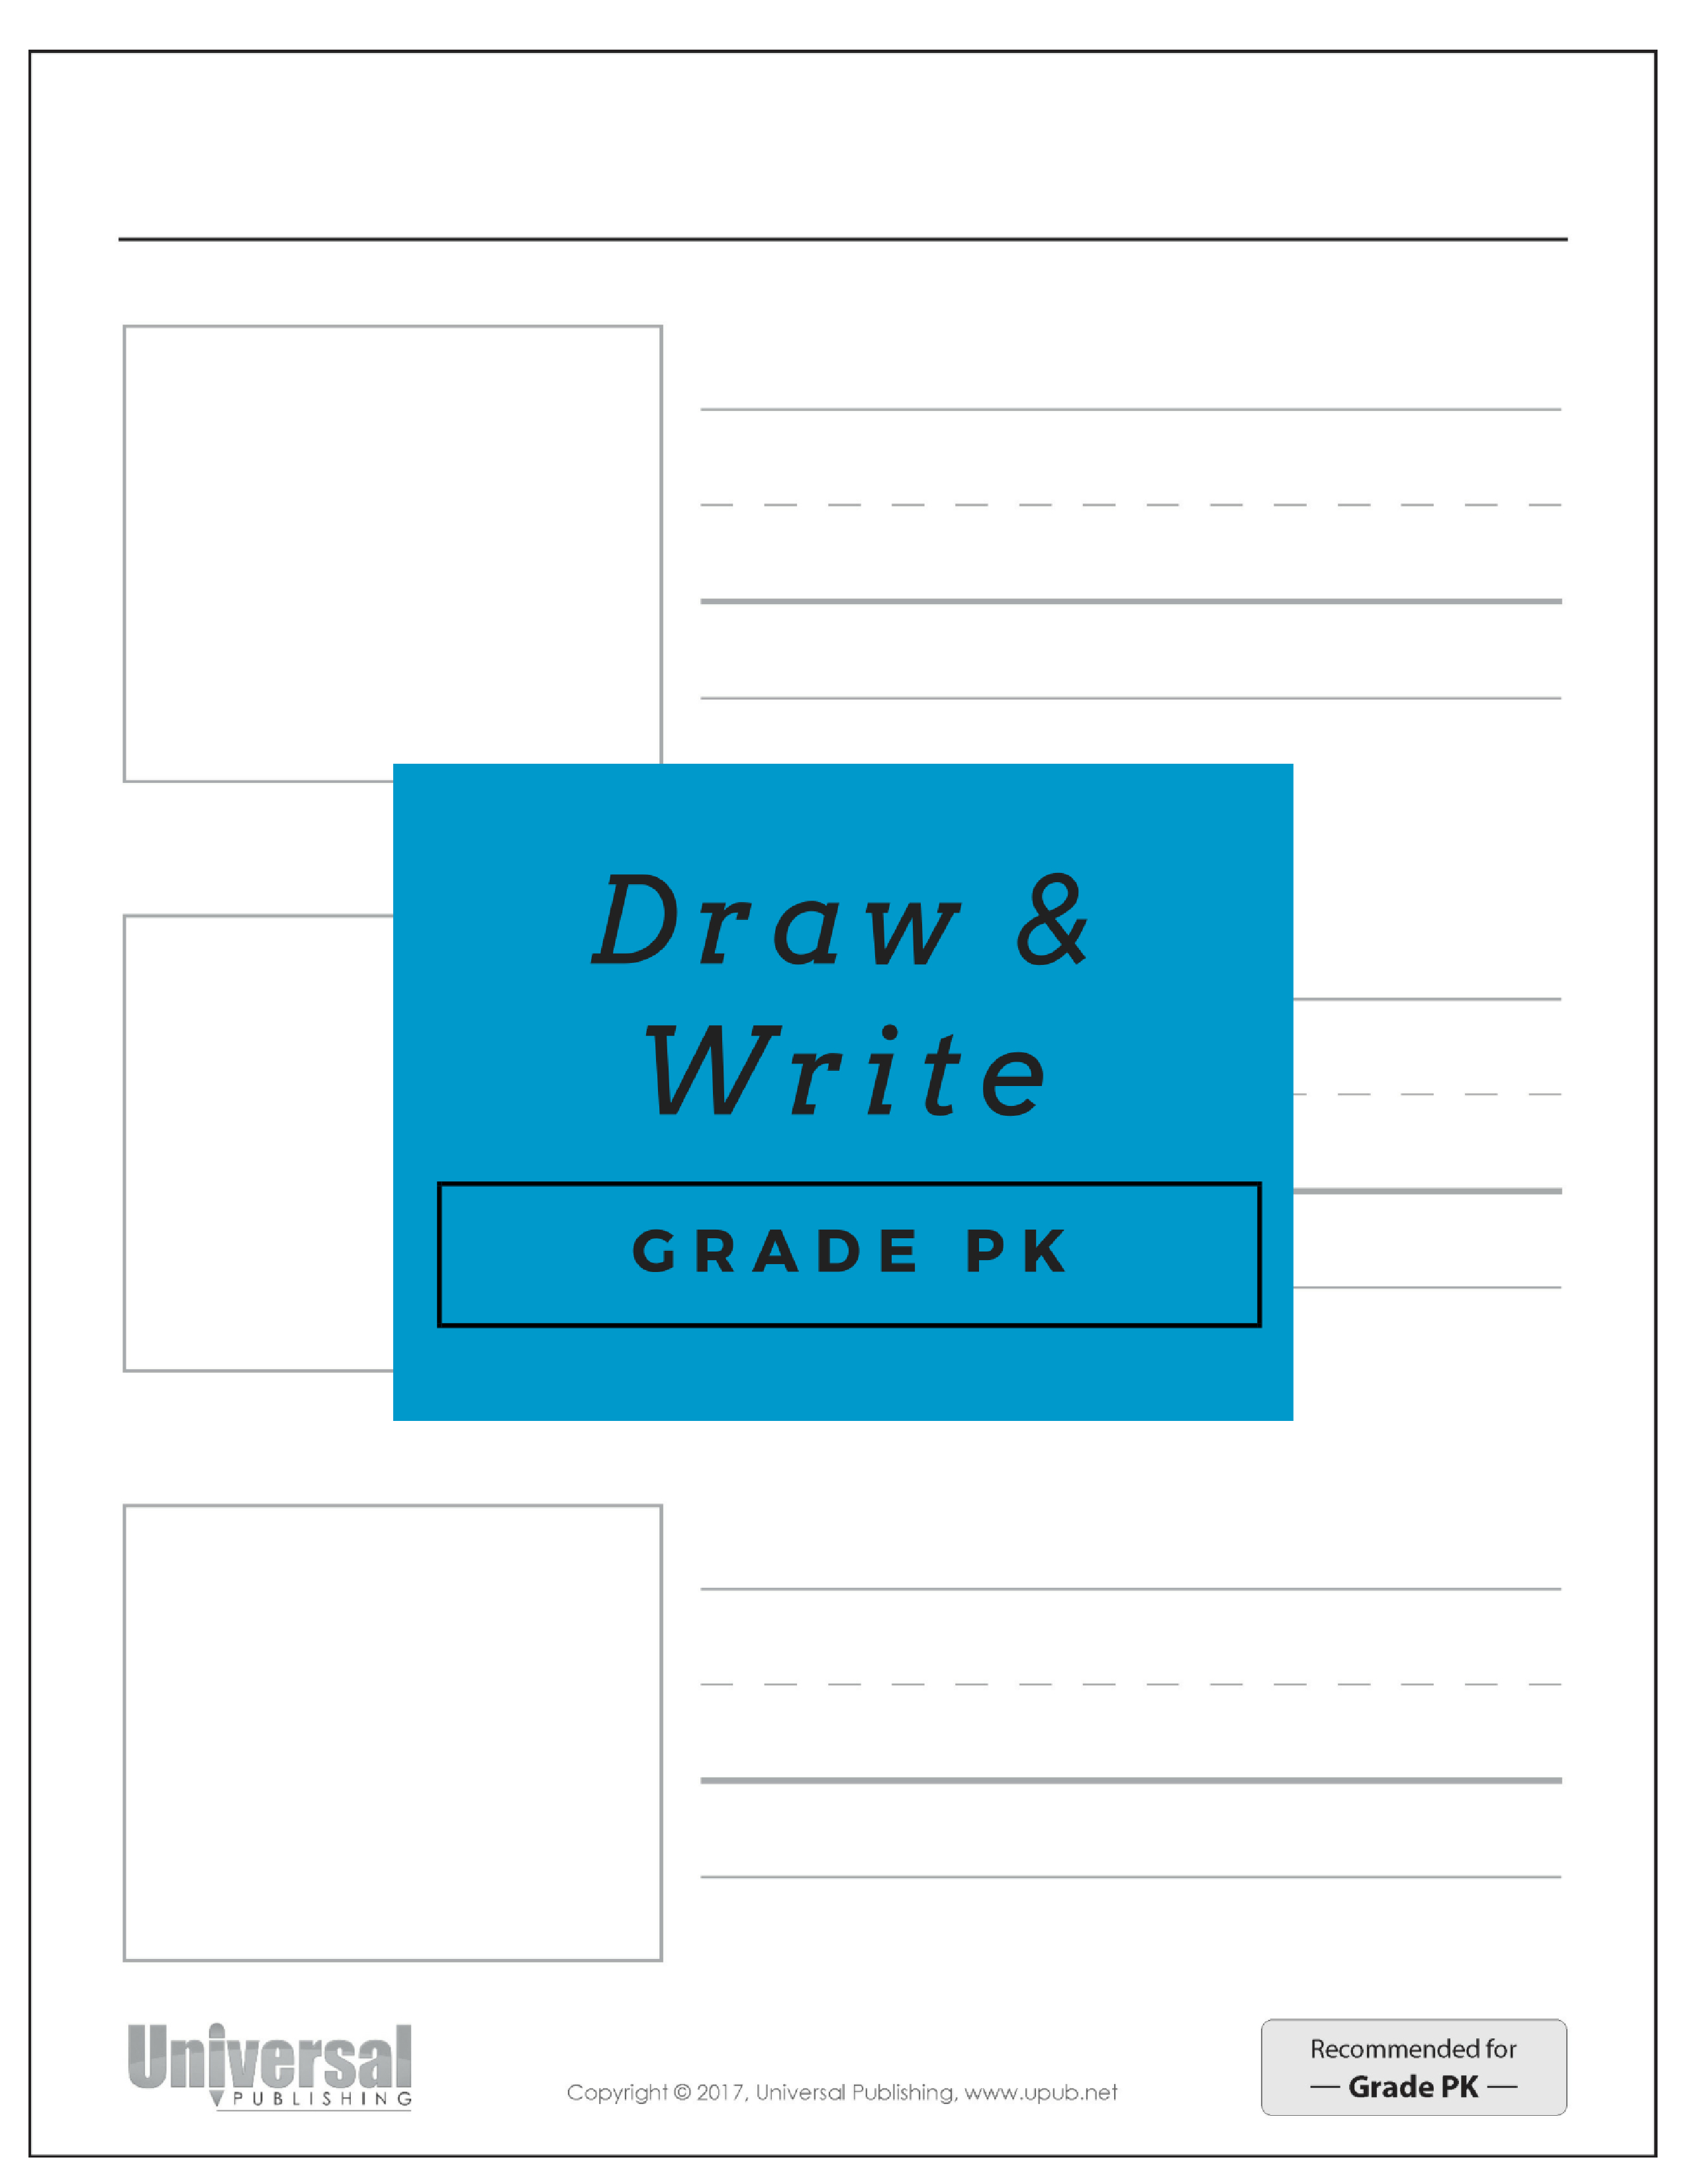 Free Worksheets - Free Printable Versatiles Worksheets | Free Printables | Free Printable Versatiles Worksheets